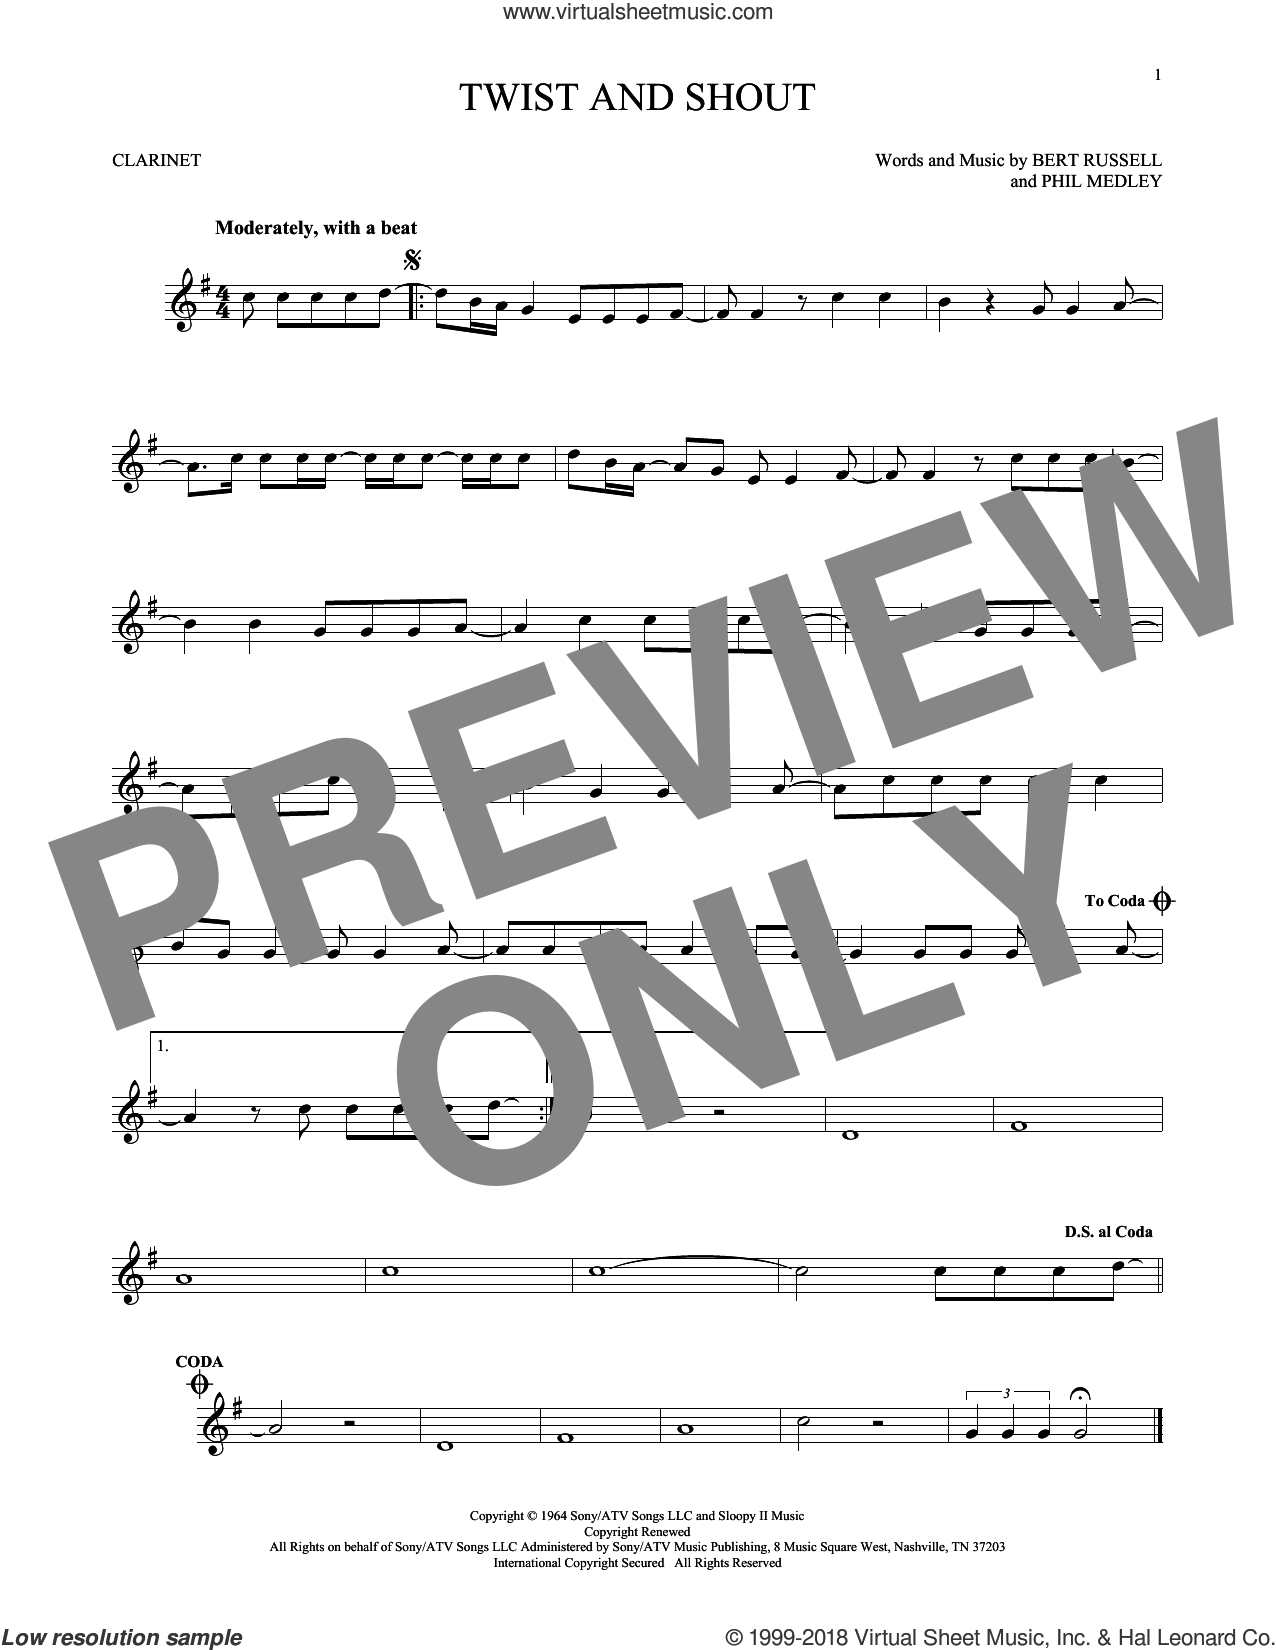 Twist And Shout sheet music for clarinet solo by Phil Medley, The Beatles, The Isley Brothers and Bert Russell. Score Image Preview.